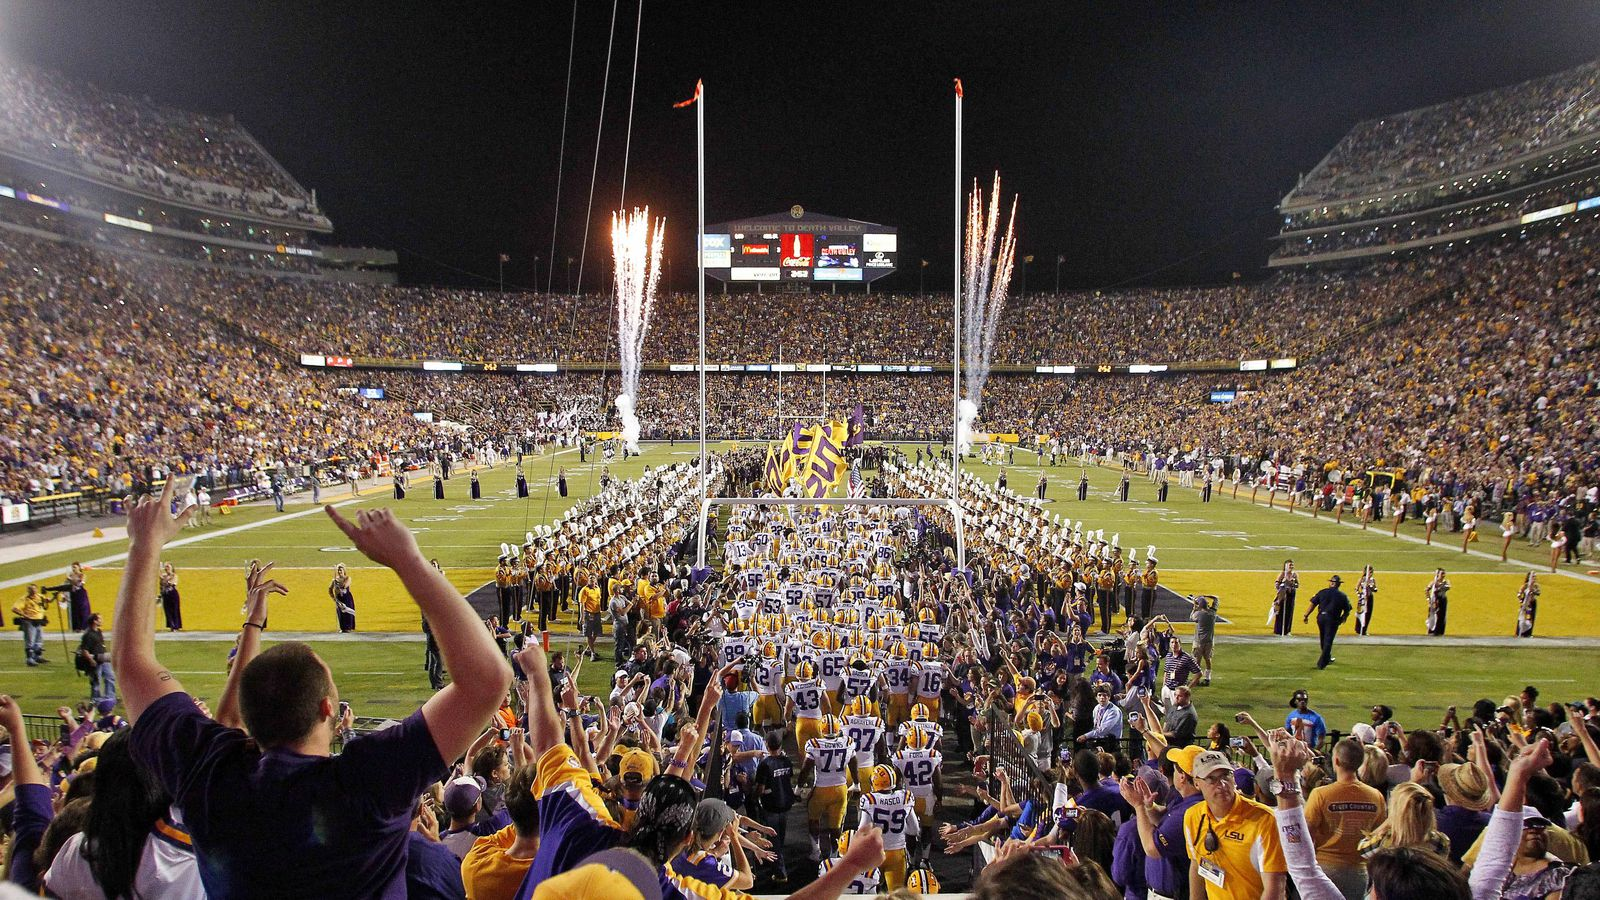 FIRST LSU 2013 FOOTBALL TRAILER - And The Valley Shook